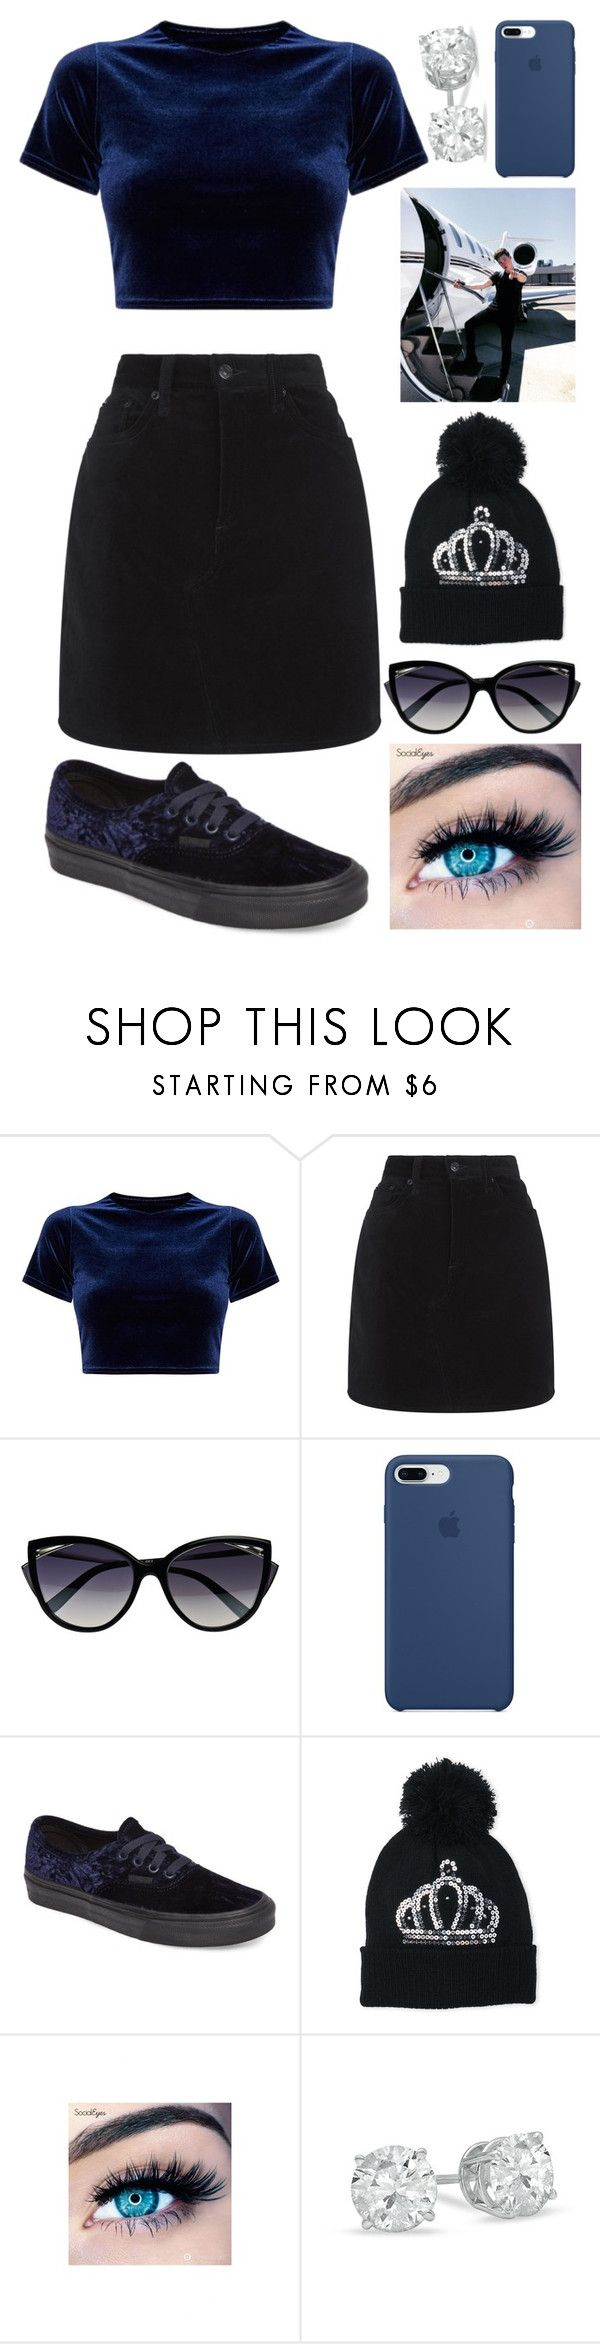 """""""Zach Herron- Requested"""" by imagines-about-boys ❤ liked on Polyvore featuring rag & bone, La Perla, Apple, Vans, Betsey Johnson and MINX"""